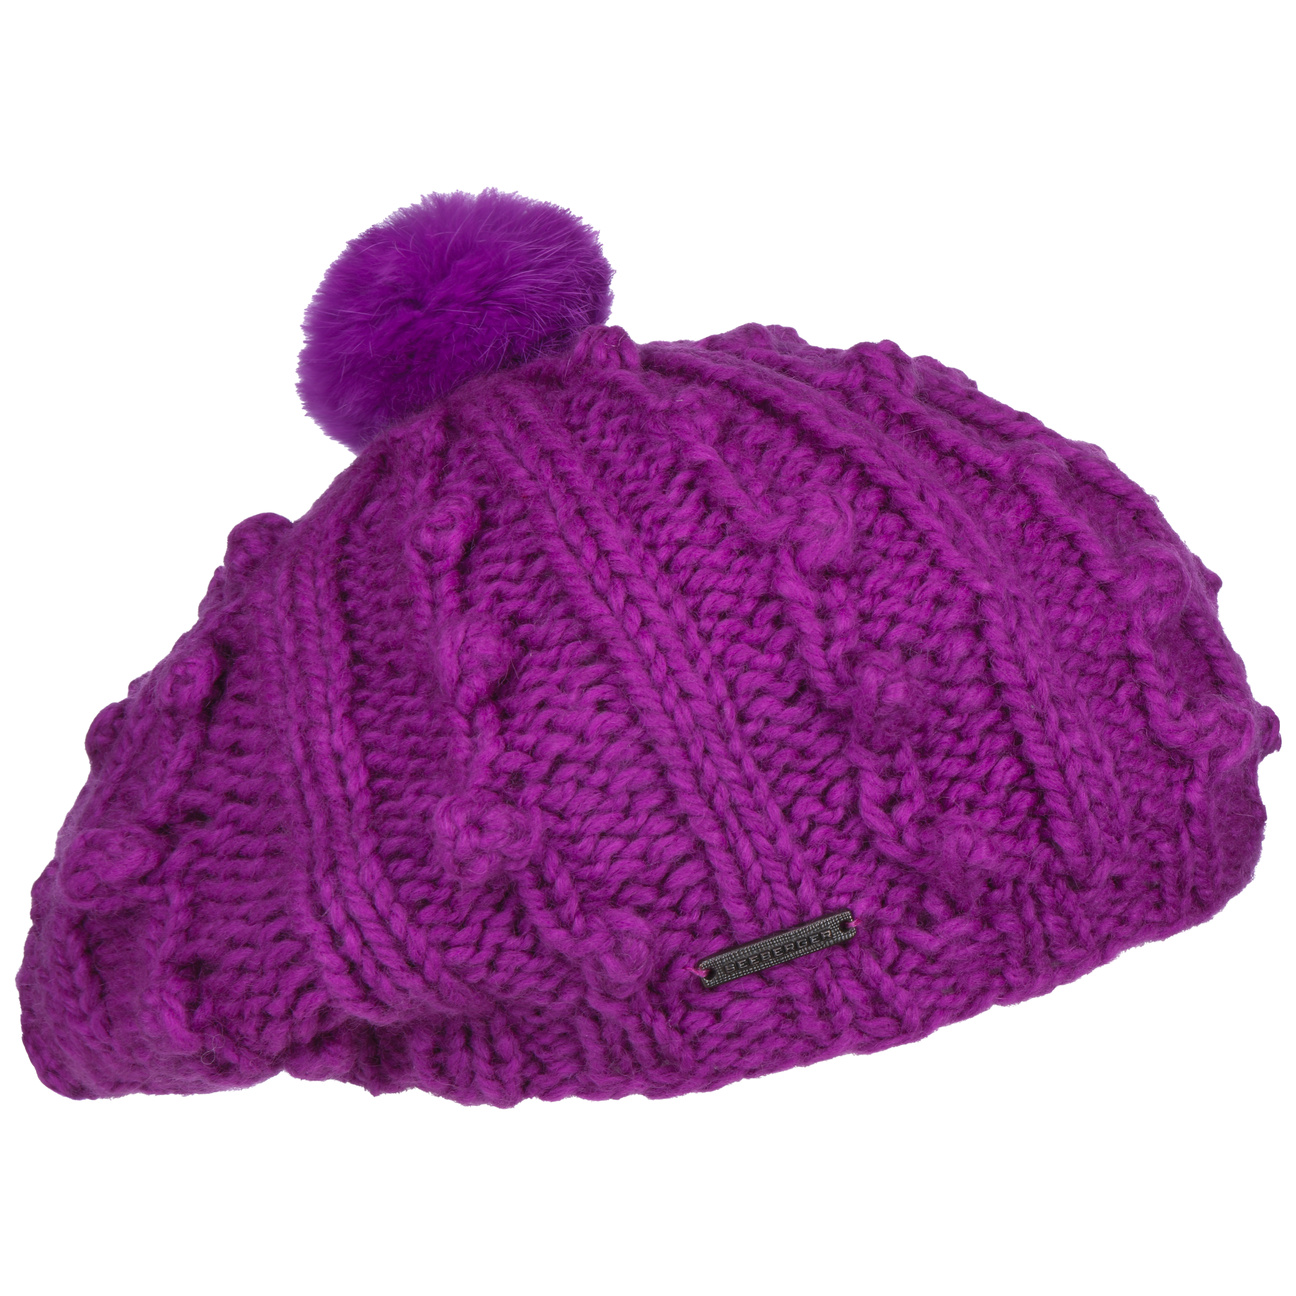 985f225ba9aacb Mia Knit Beret by Seeberger, EUR 29,95 --> Hats, caps & beanies shop ...